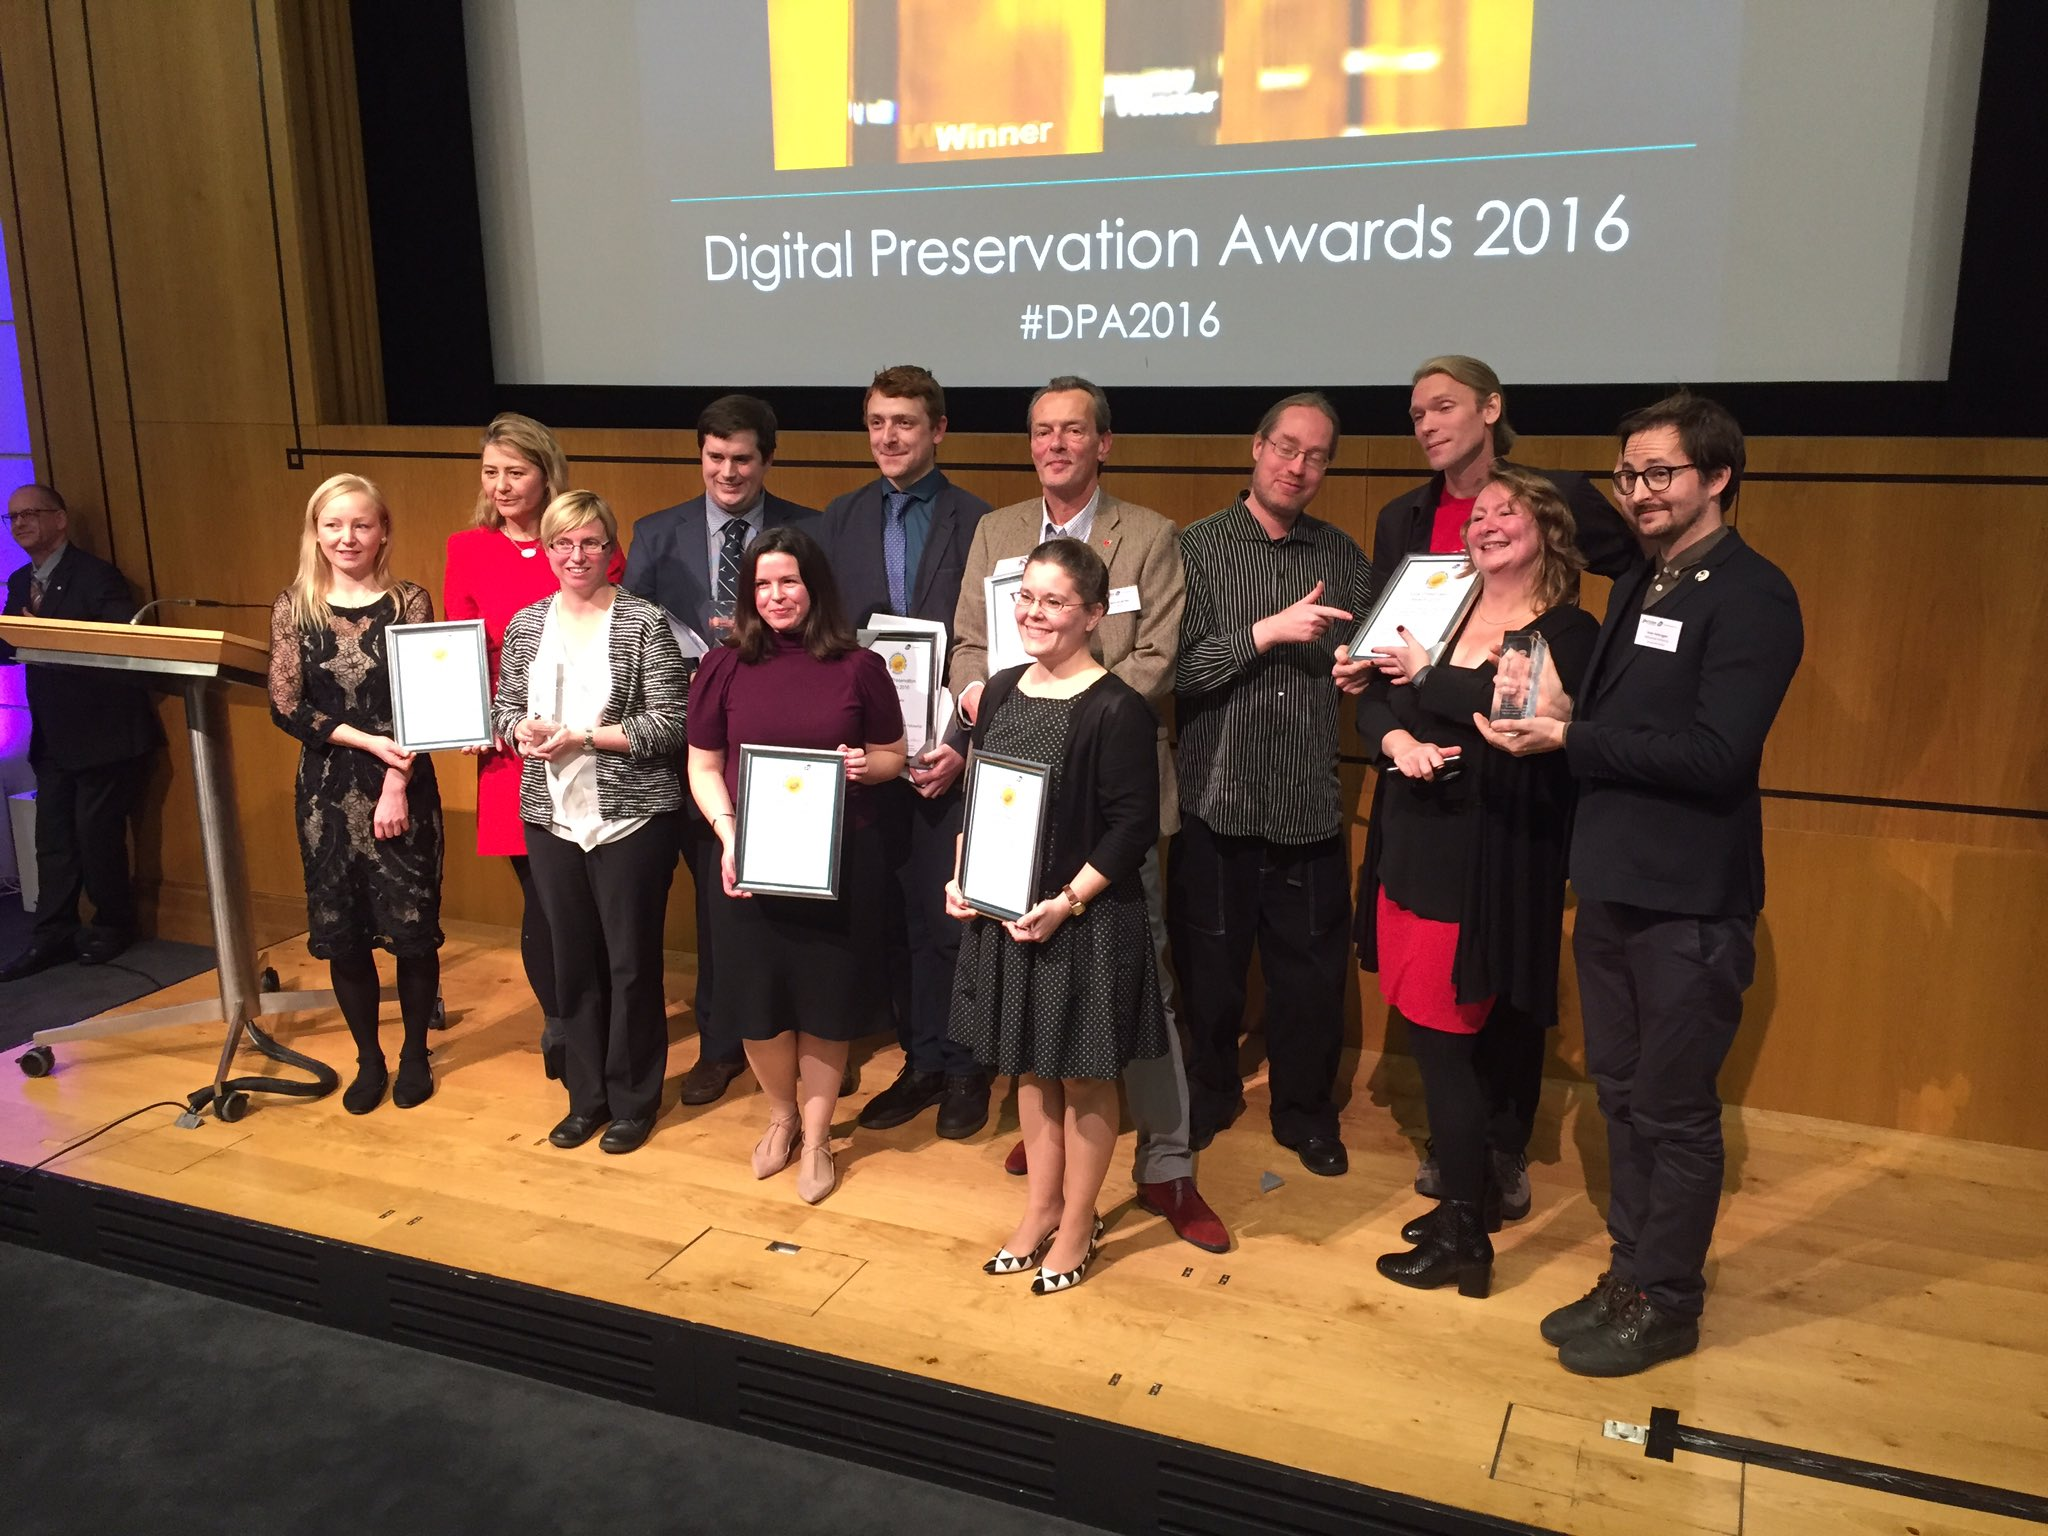 Digital Preservation Awards 2016